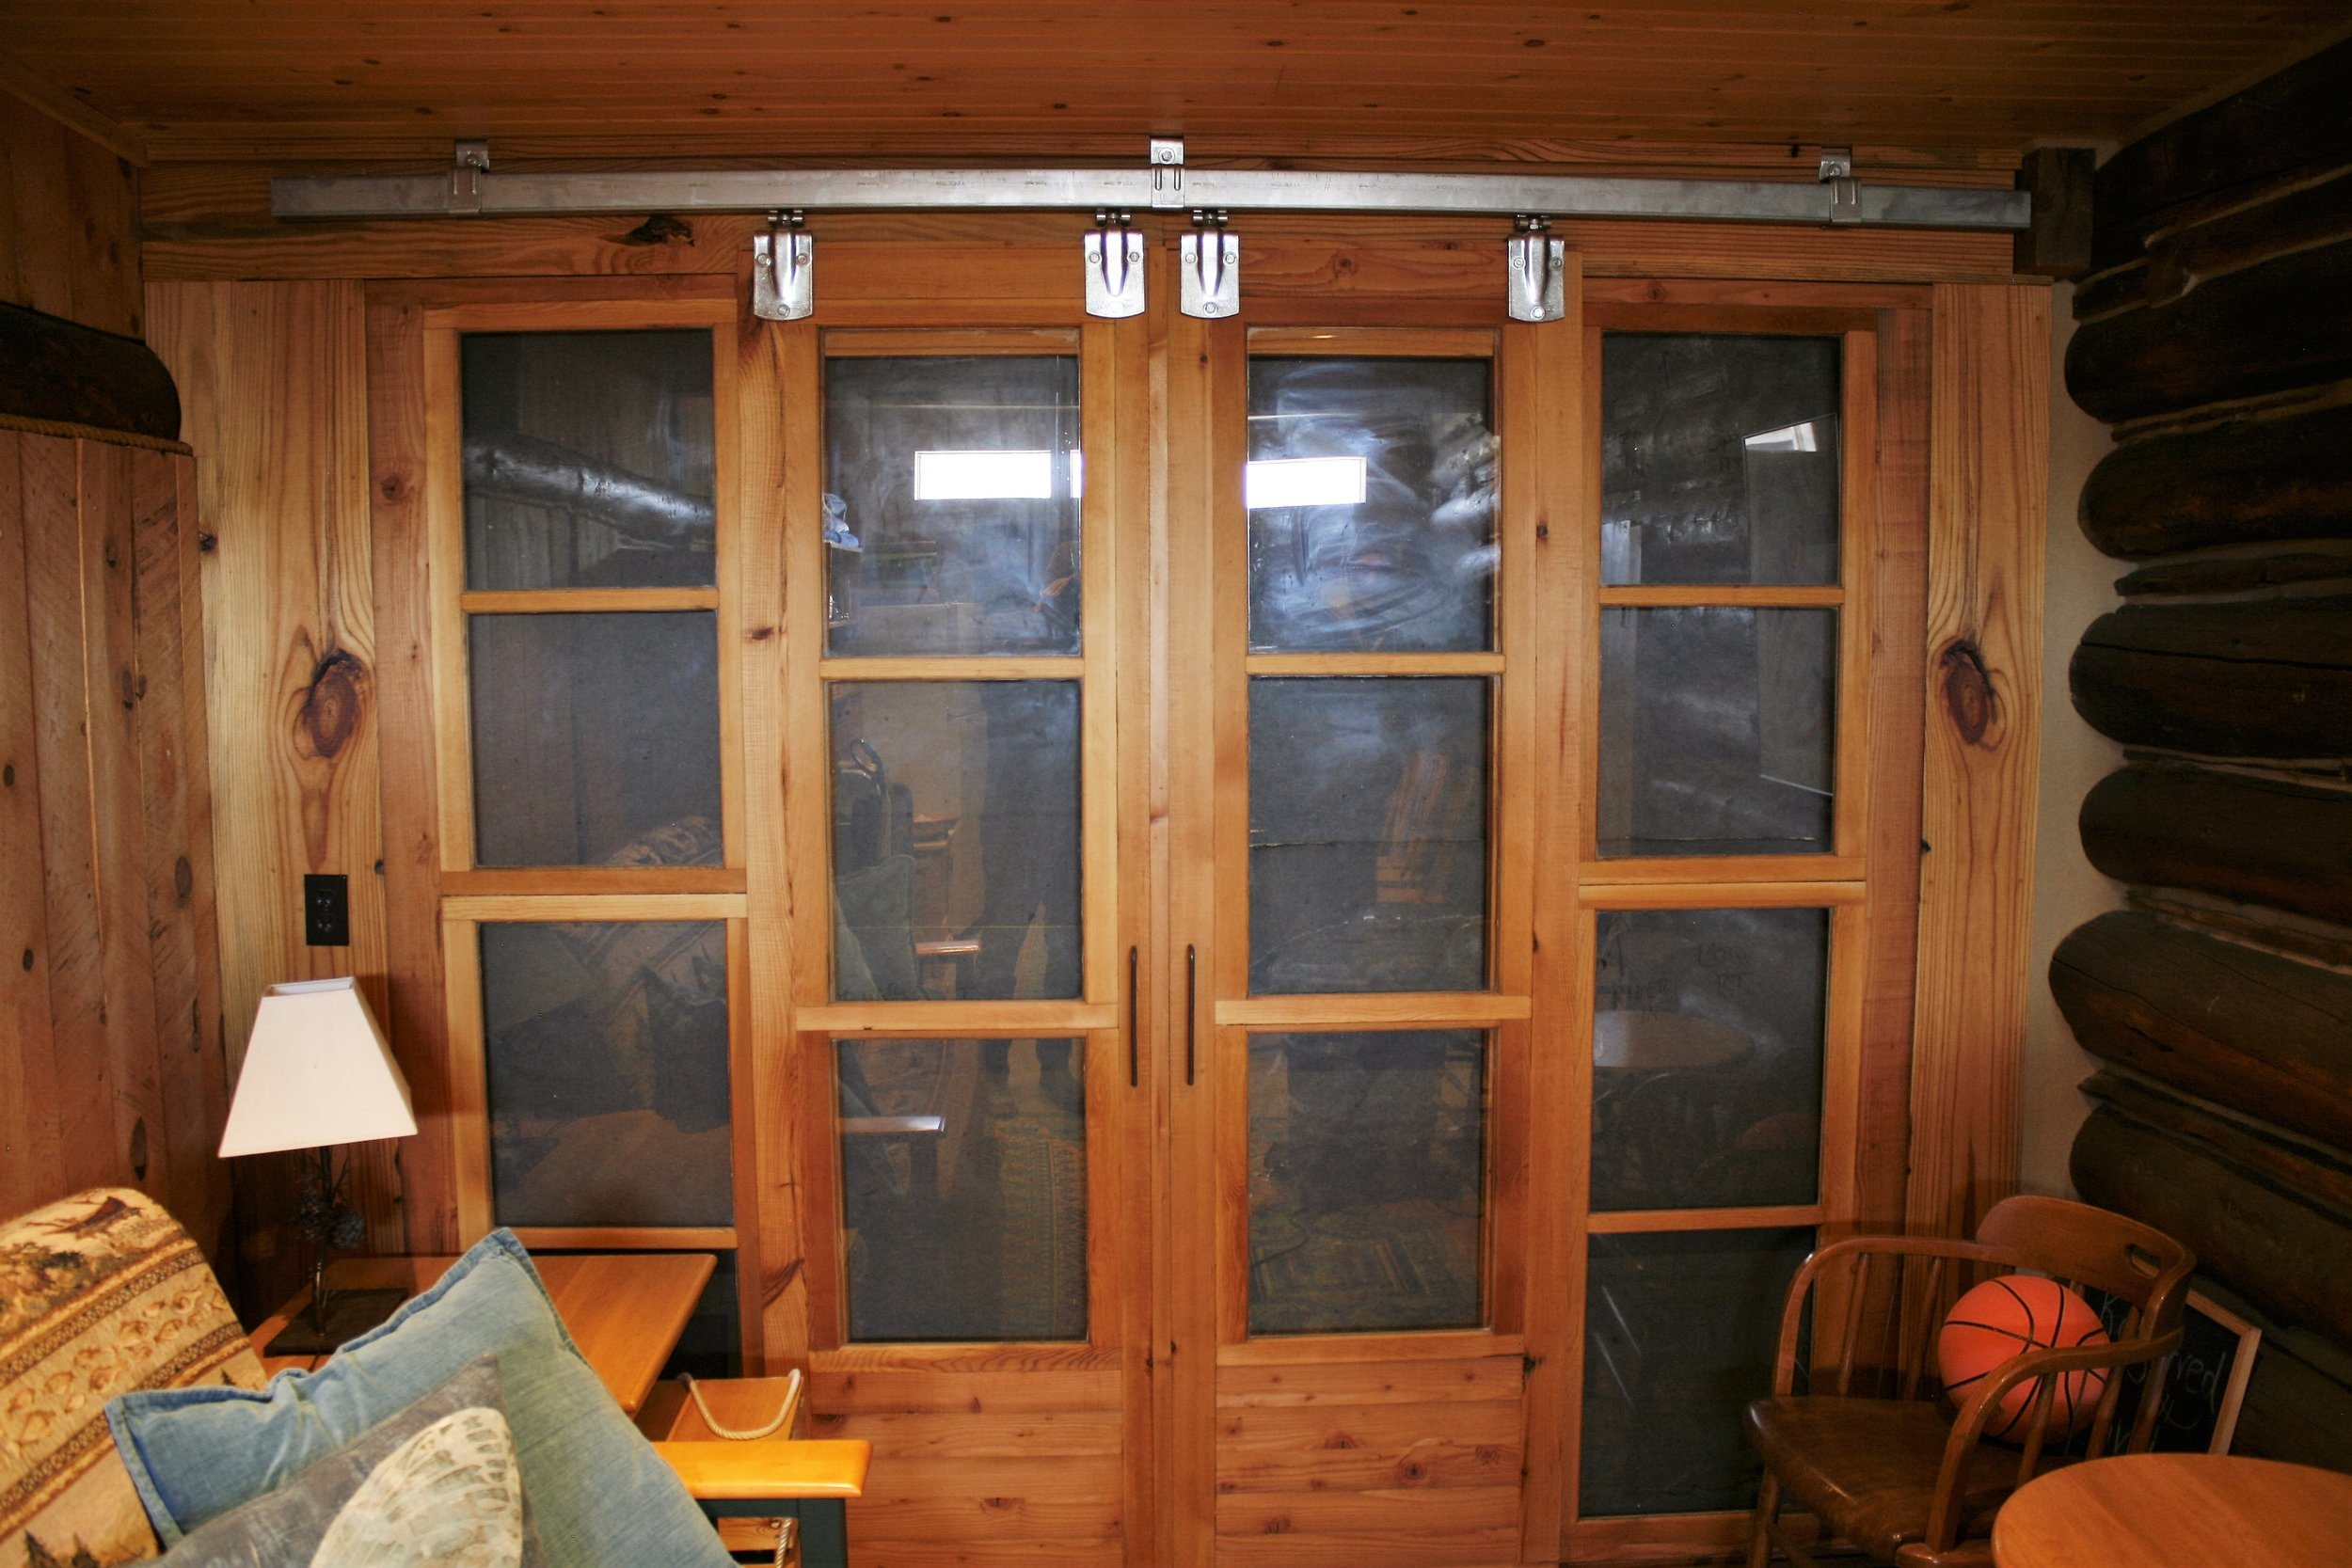 Sliding doors built using old storm windows found on the property